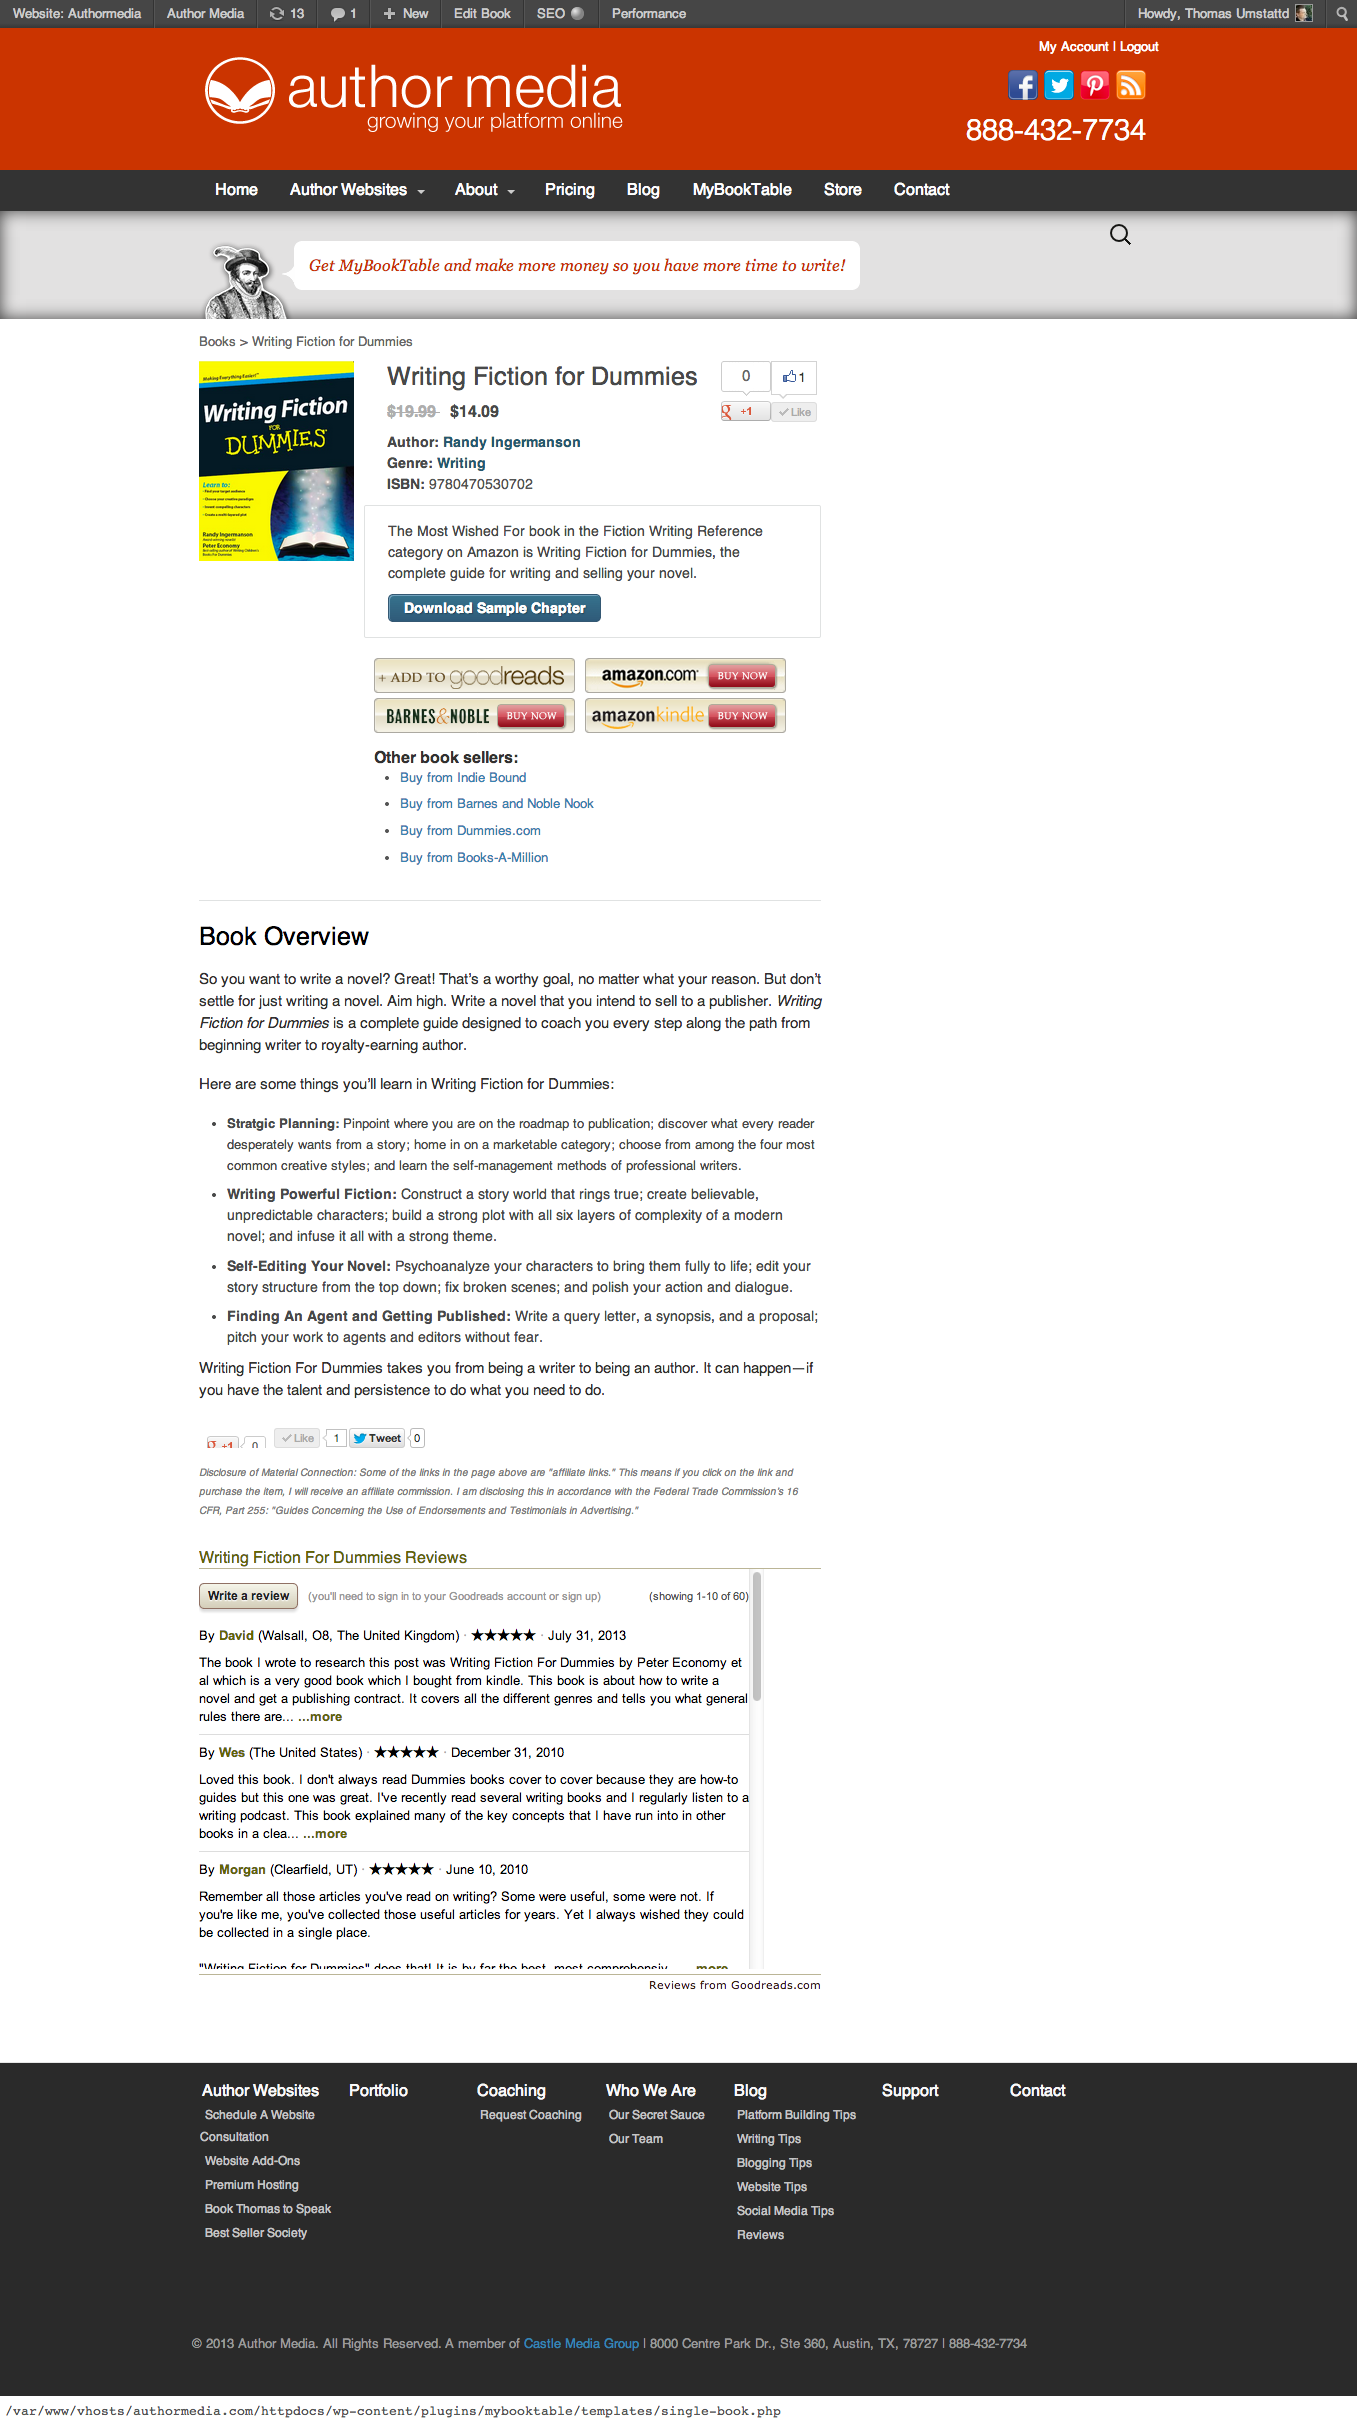 <p>This is an individual MyBookTable page.</p>